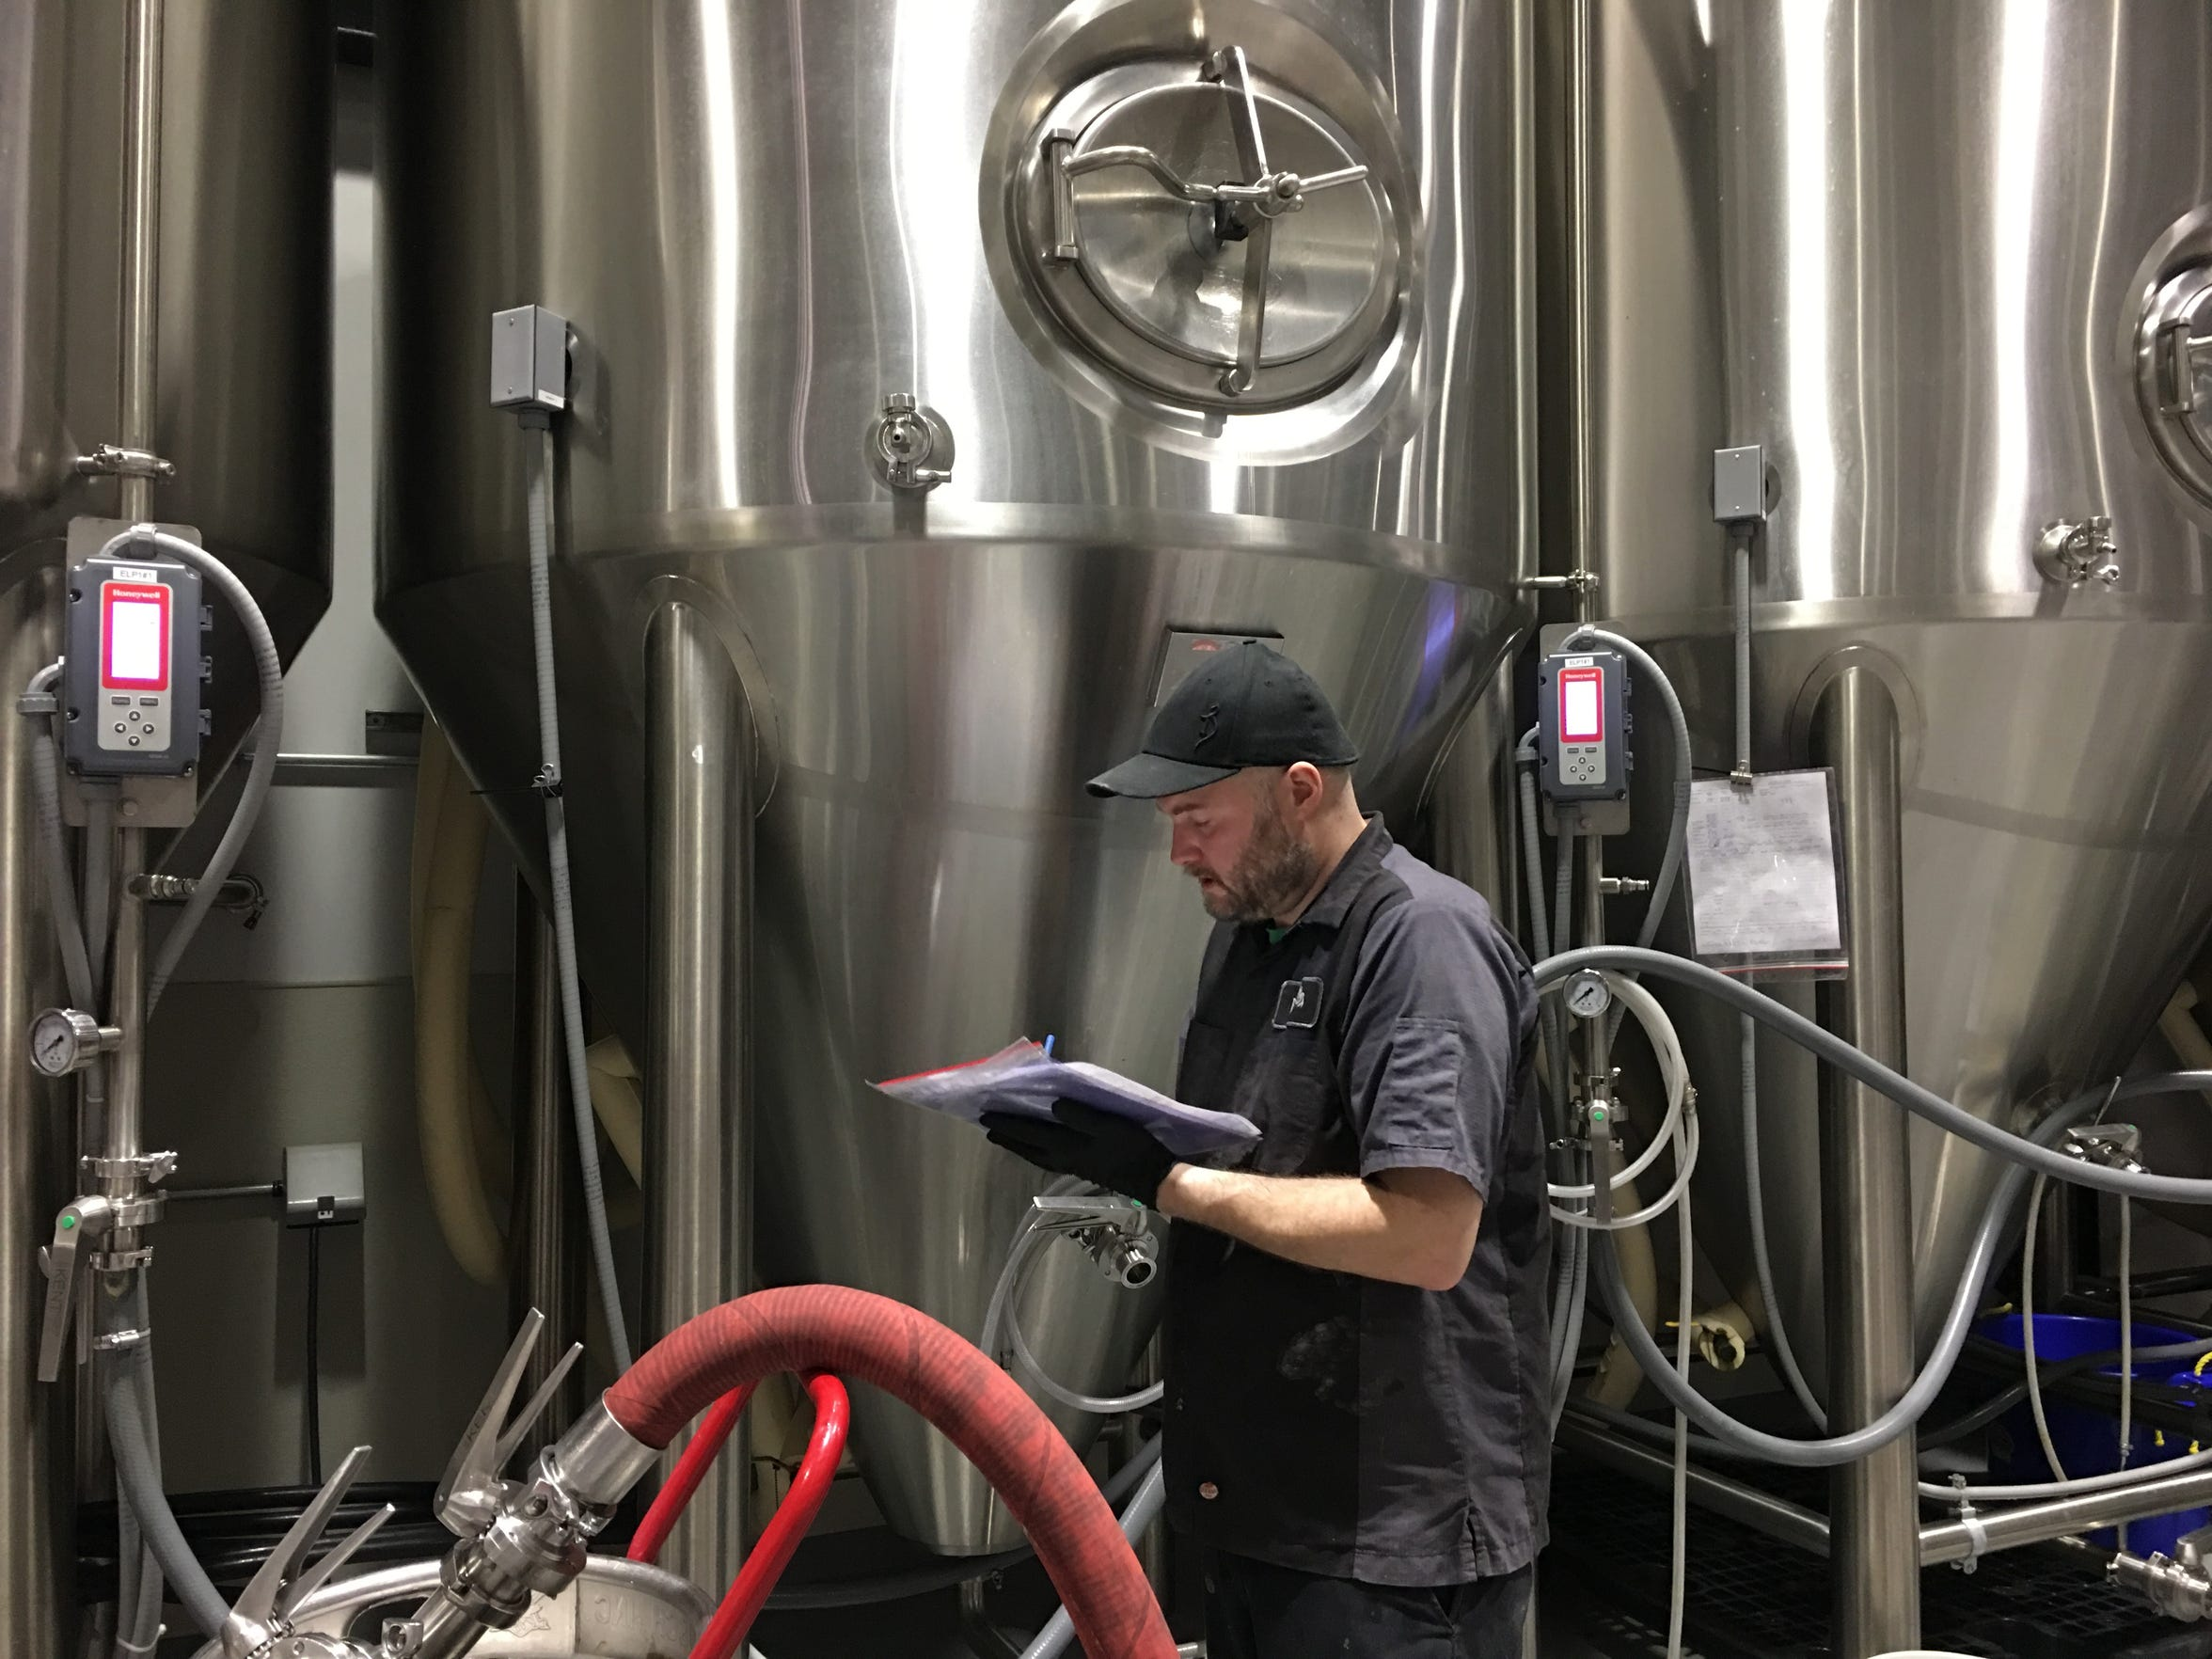 Jim Conroy takes notes on the day's brew of Ouroboros before calling it at night at The Alchemist in Stowe on Jan. 17, 2019.